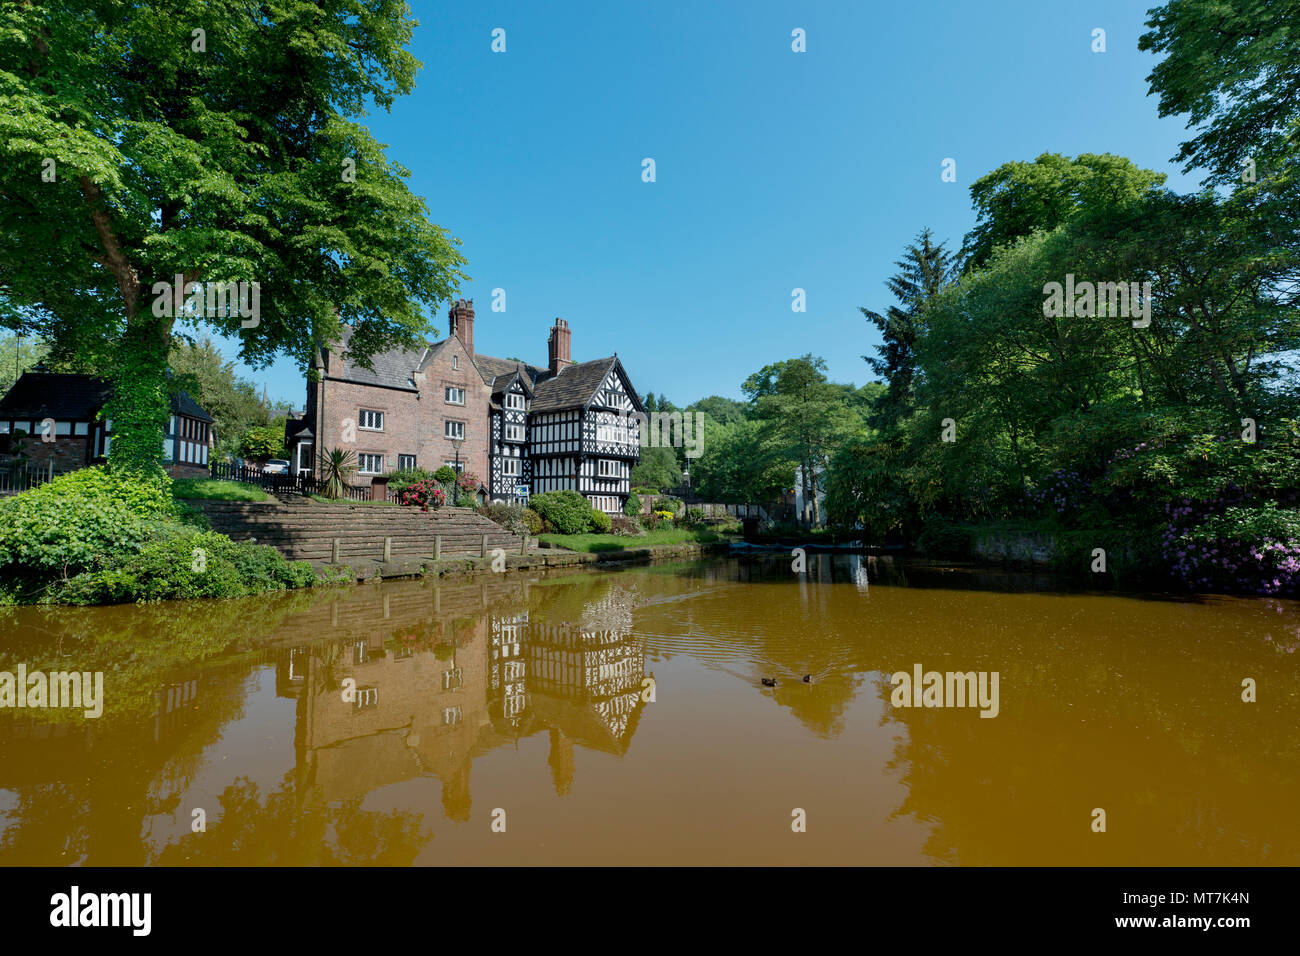 The Packet House is seen across the Bridgewater Canal in Worsley, Salford, Greater Manchester, UK. - Stock Image